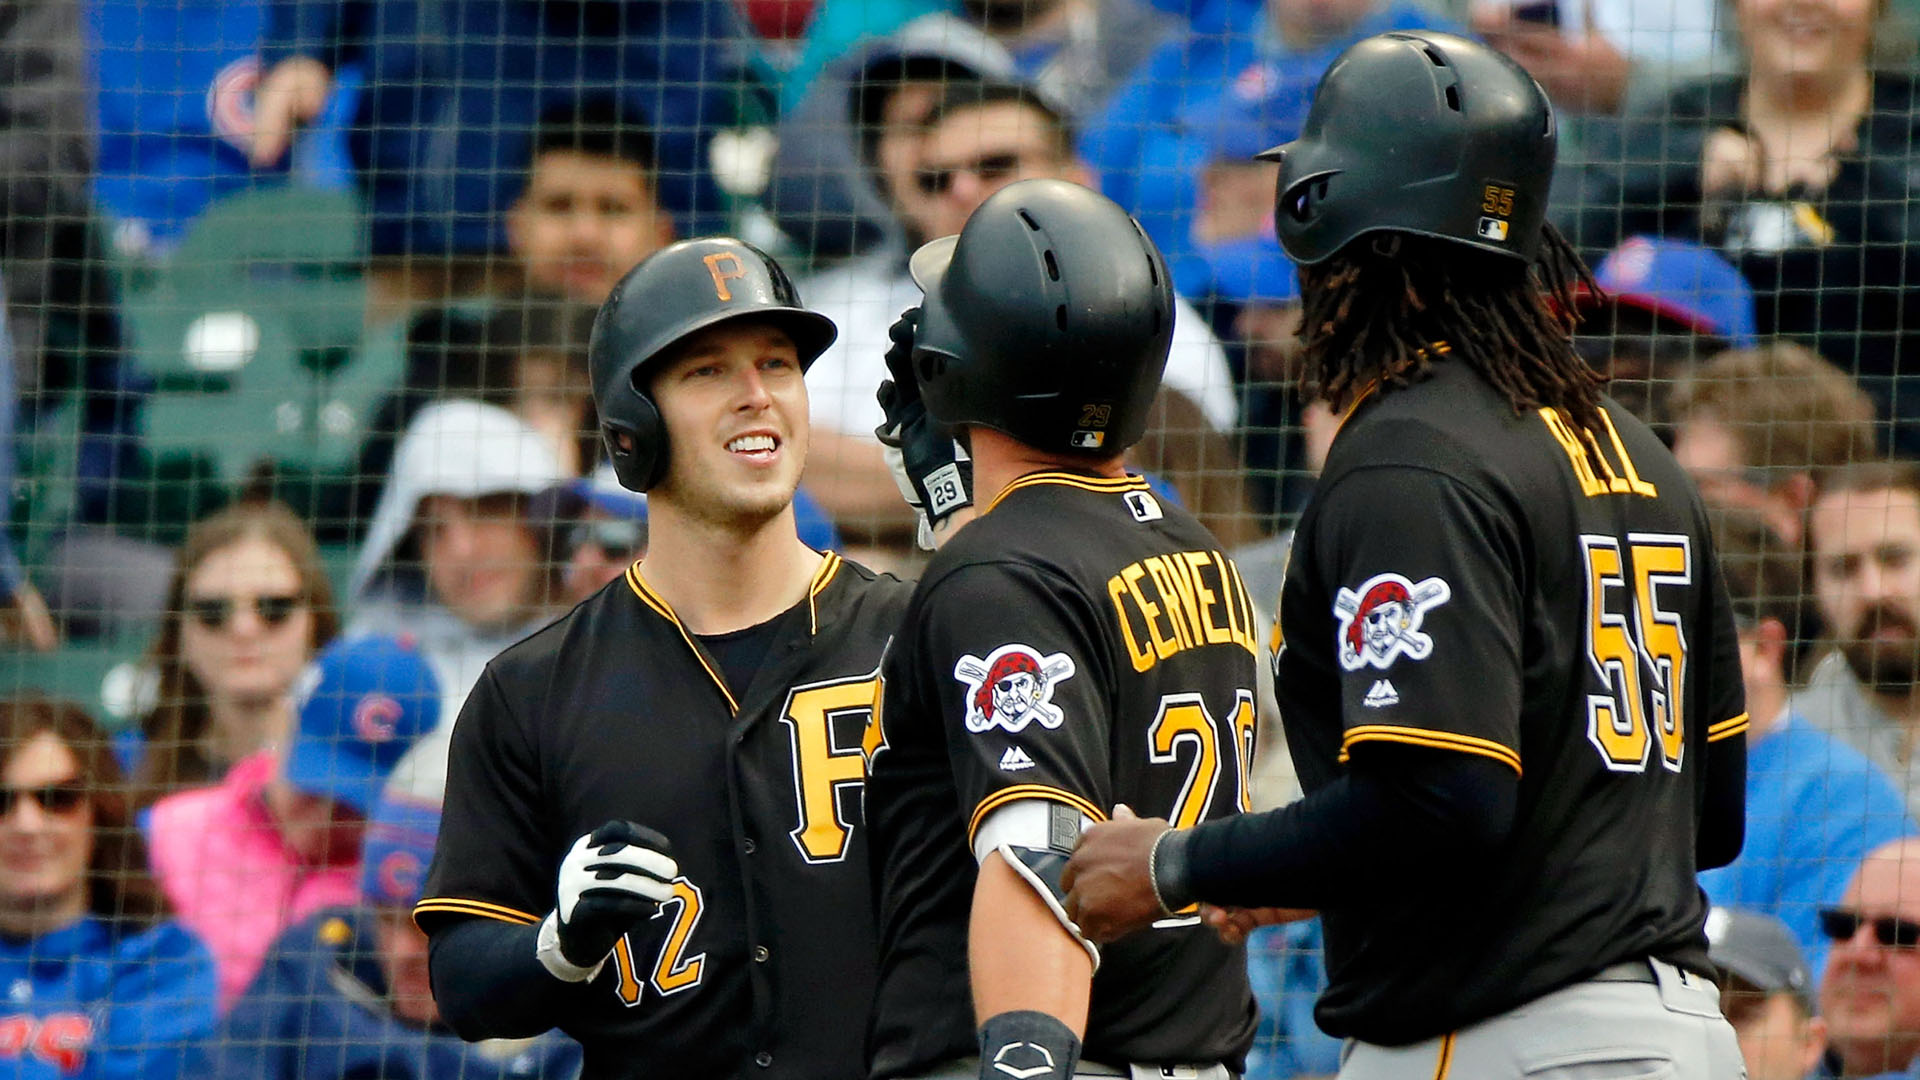 Gregory Polanco hits 2 of Pirates' 4 homers in rout of Cubs